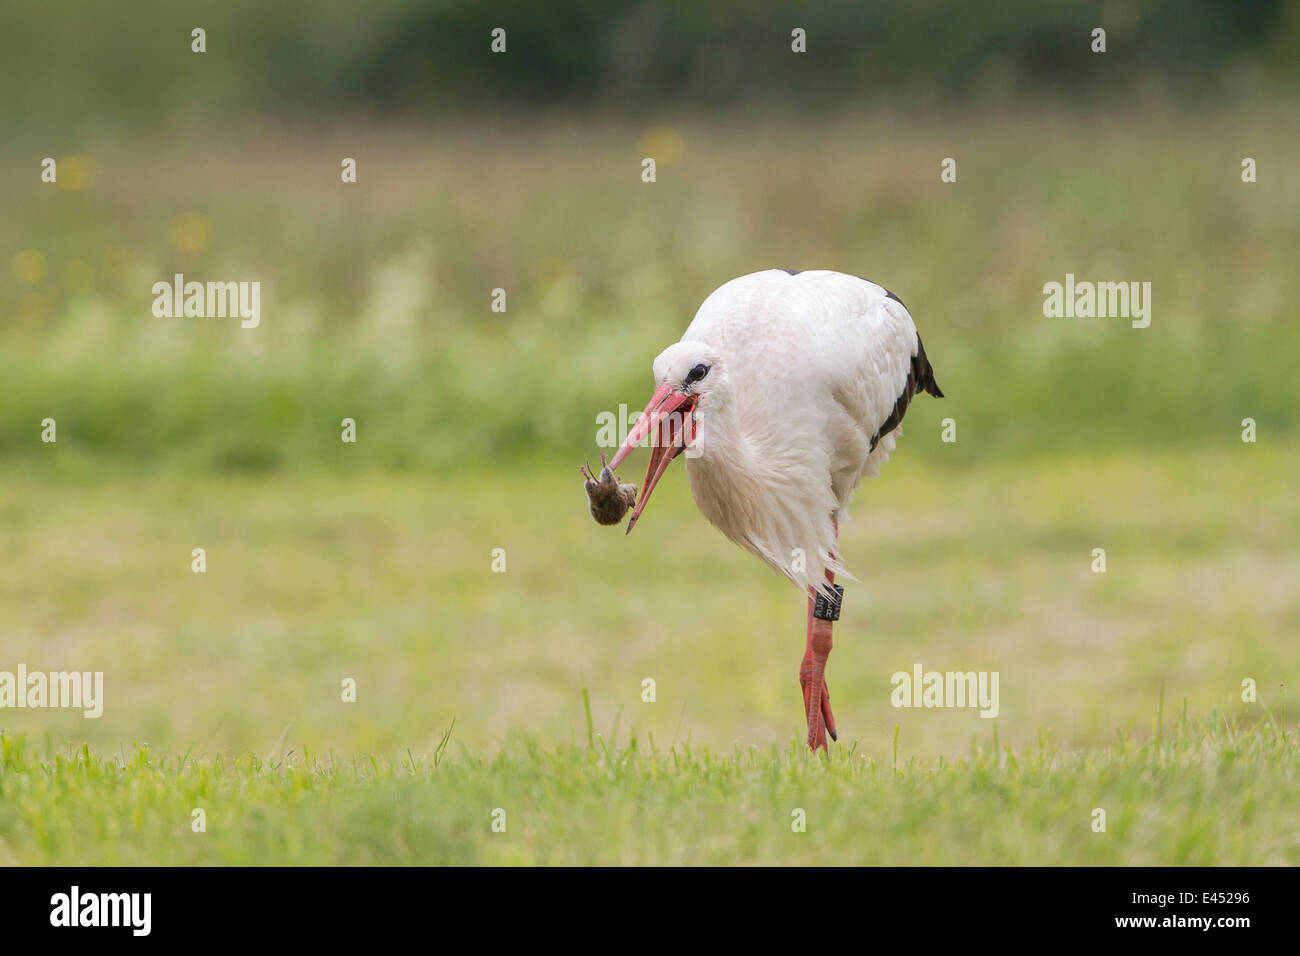 White Stork (Ciconia ciconia) capturing European Water Vole (Arvicola terrestris), North Hesse, Hesse, Germany - Stock Image